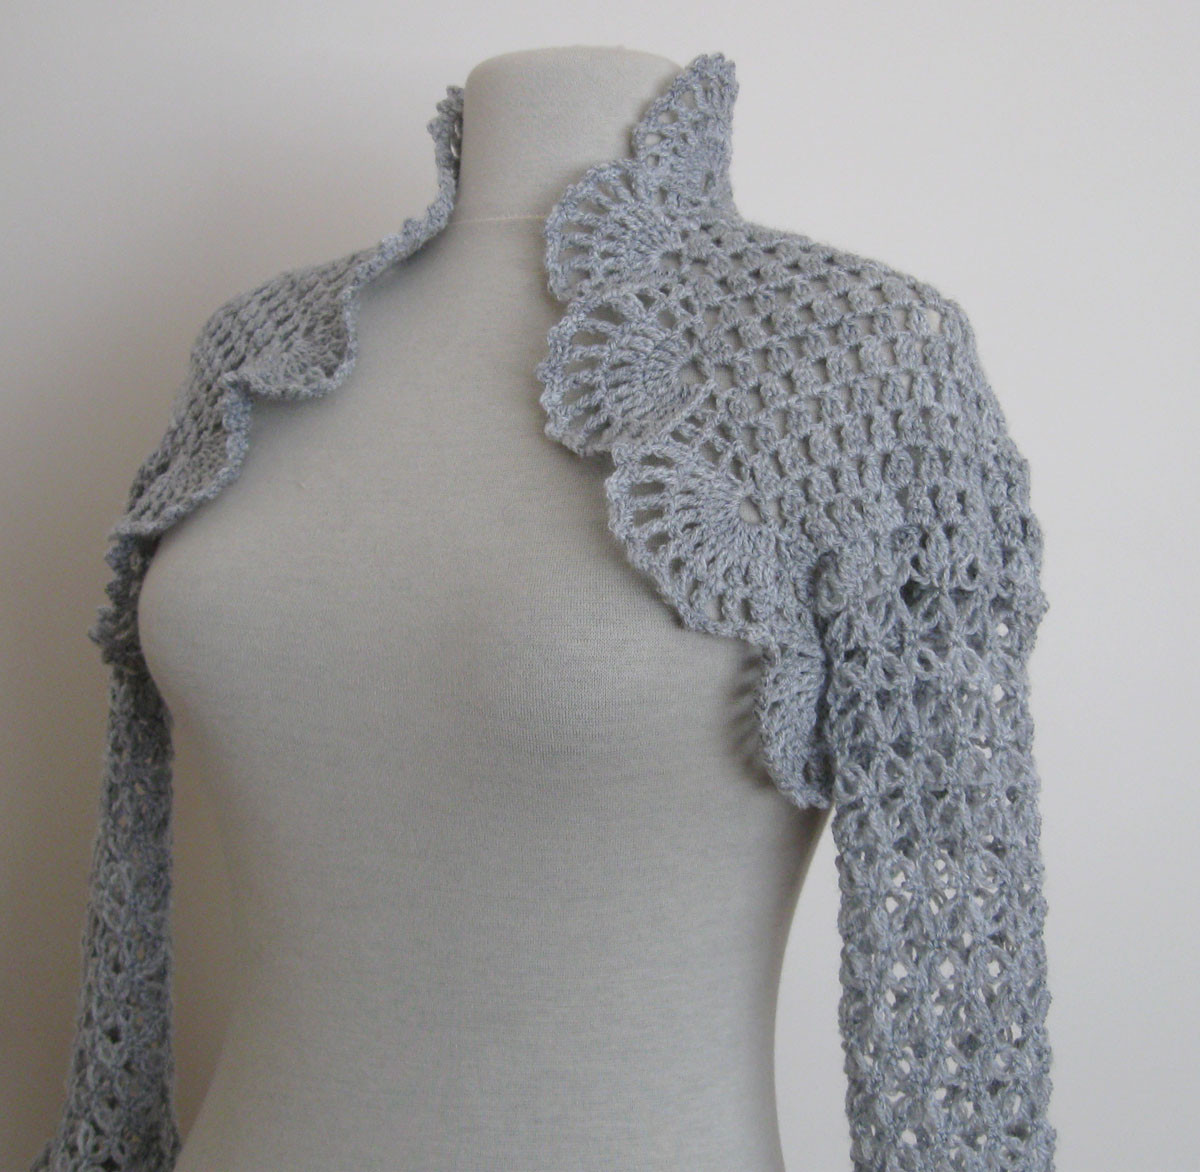 Crochet Wedding Shrug Oasis amor Fashion